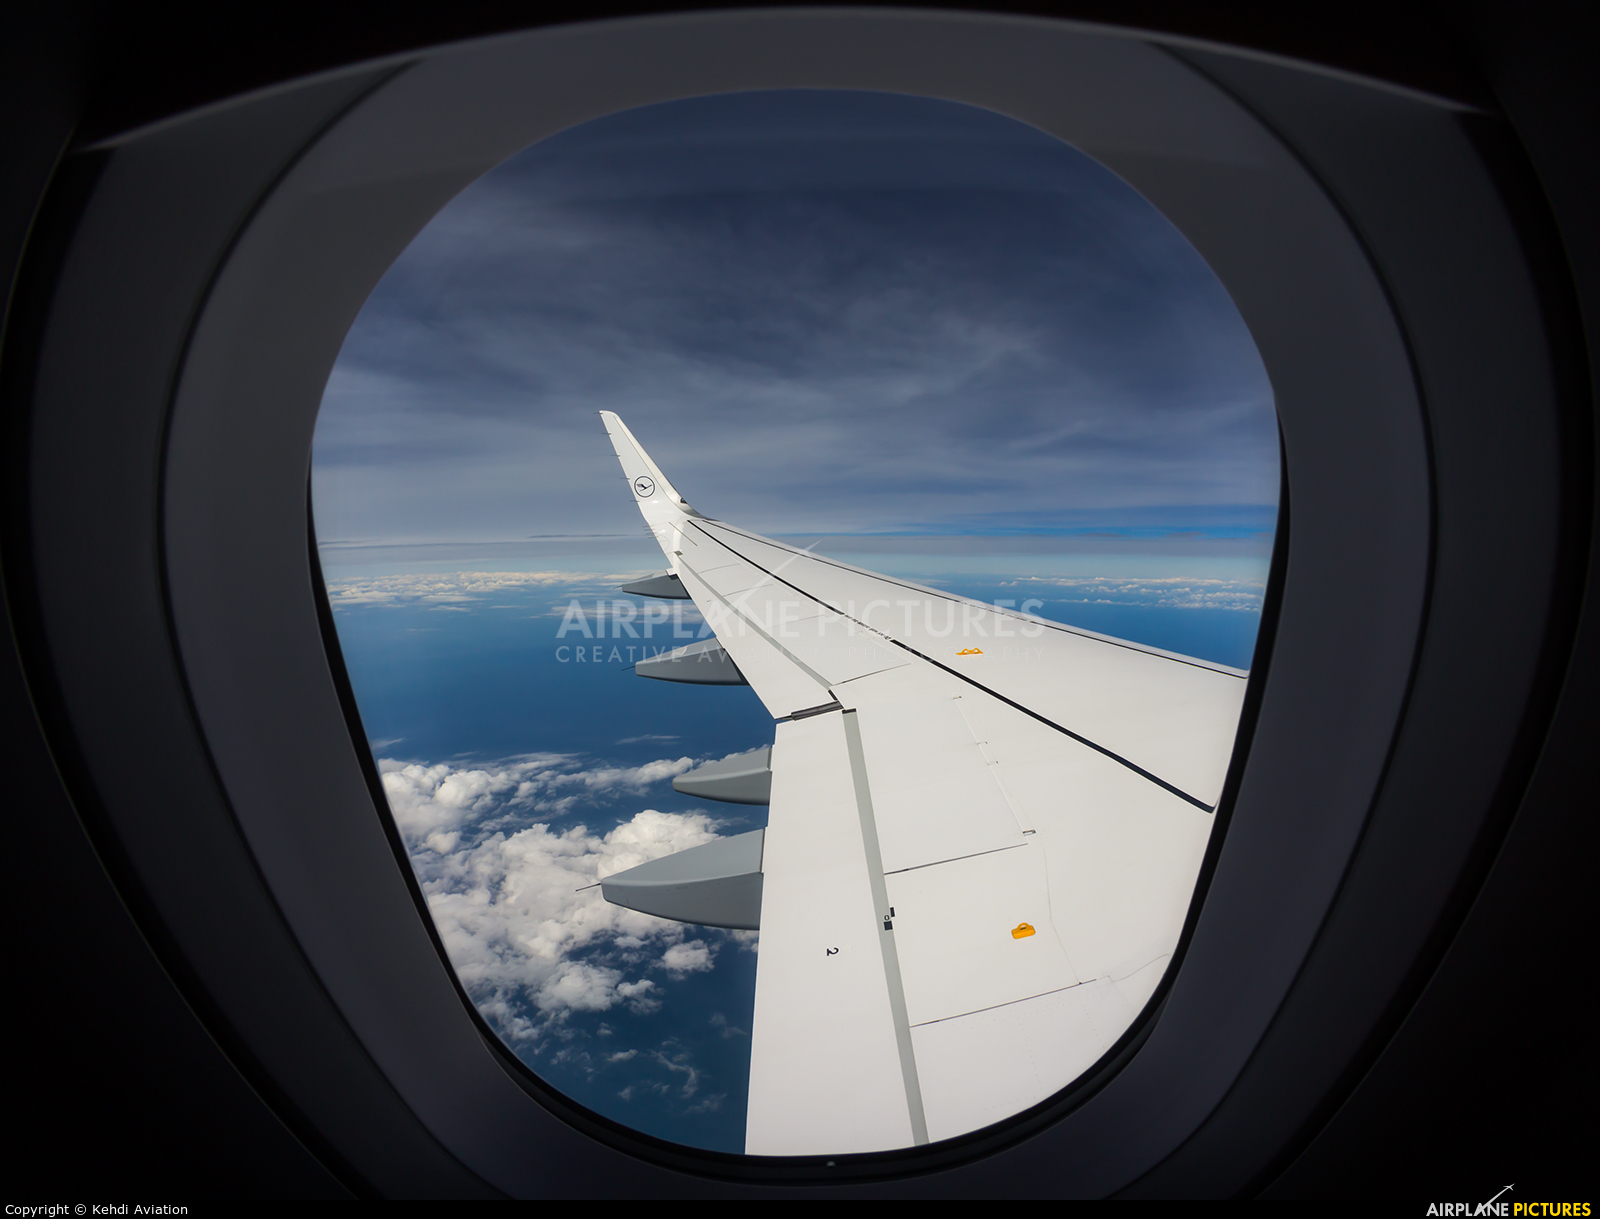 Lufthansa D-AIUU aircraft at In Flight - France